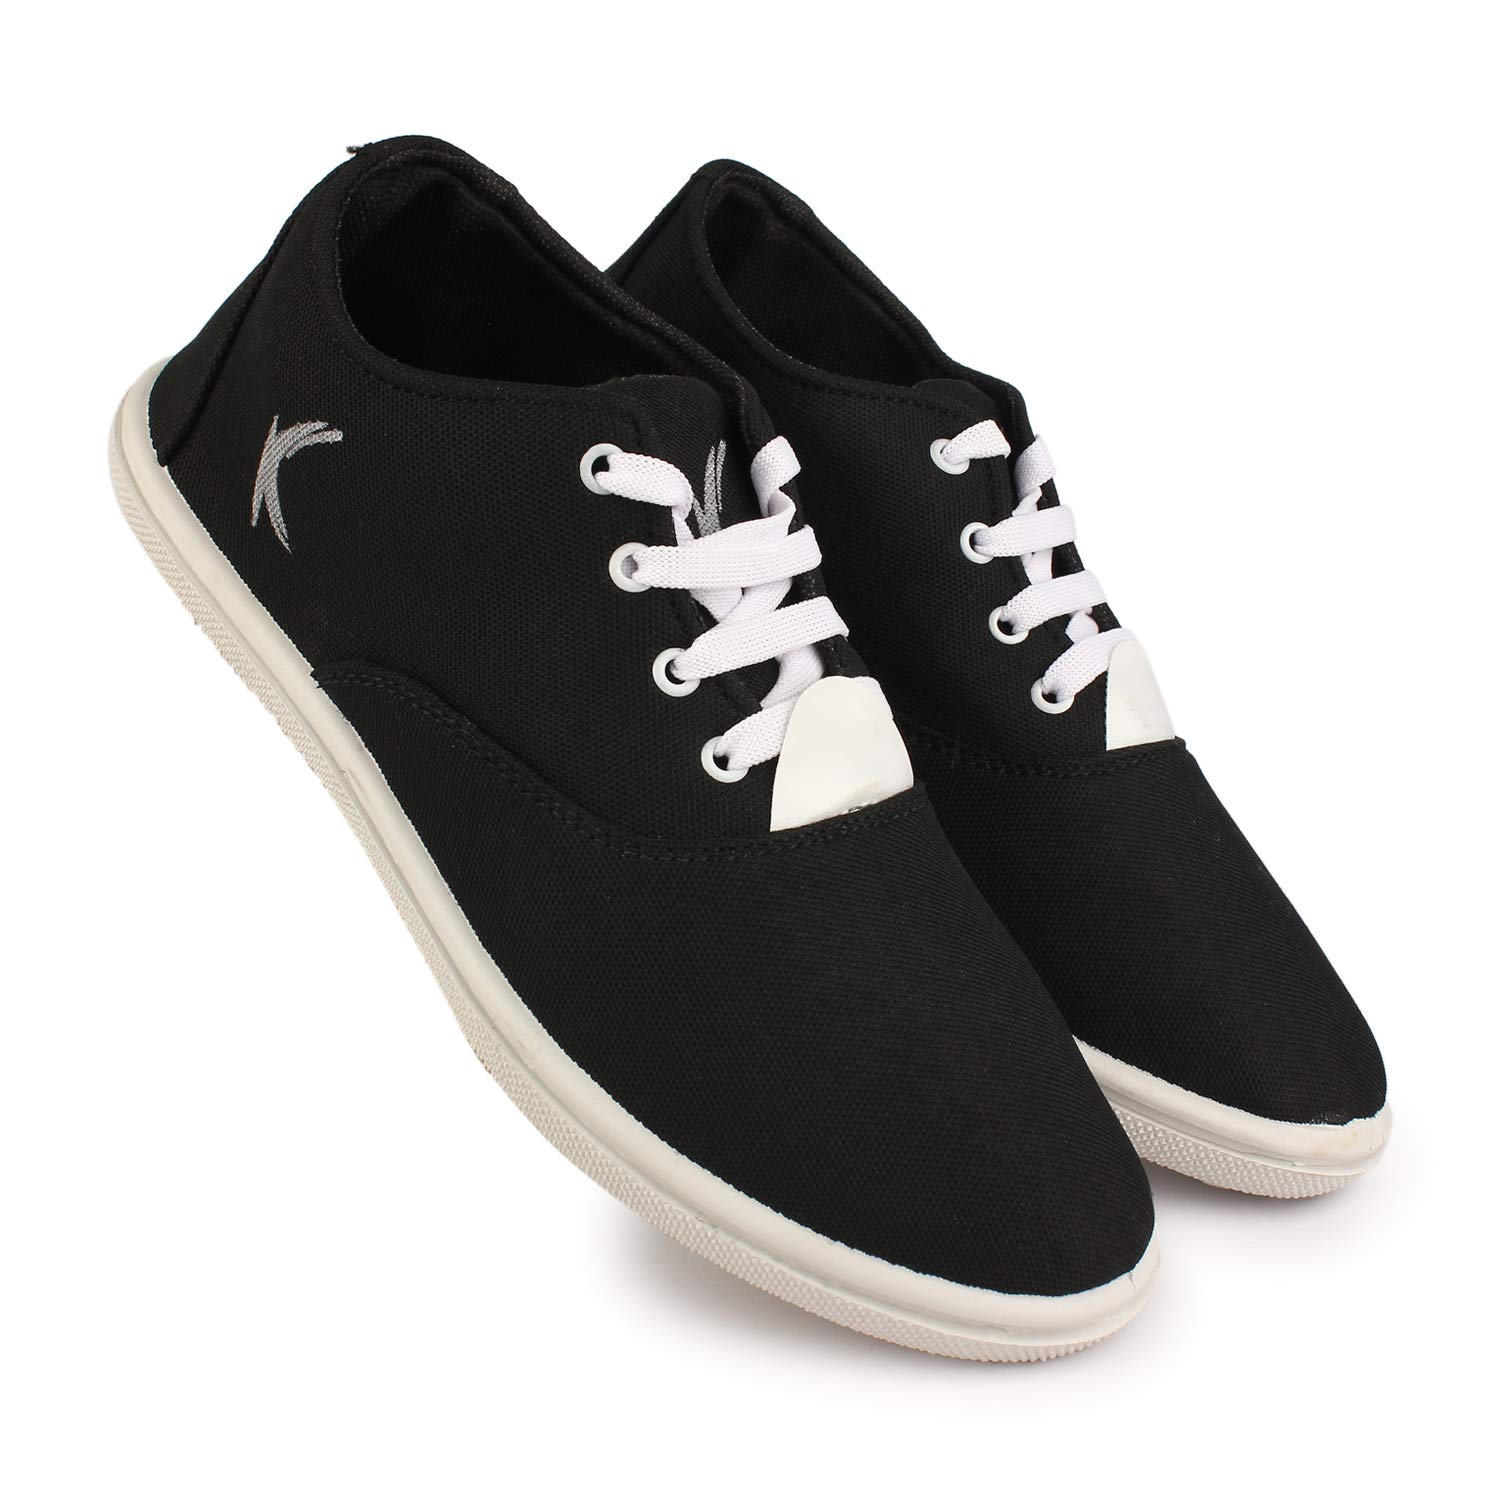 KANEGGYE Casual Canvas Sneakers Shoes